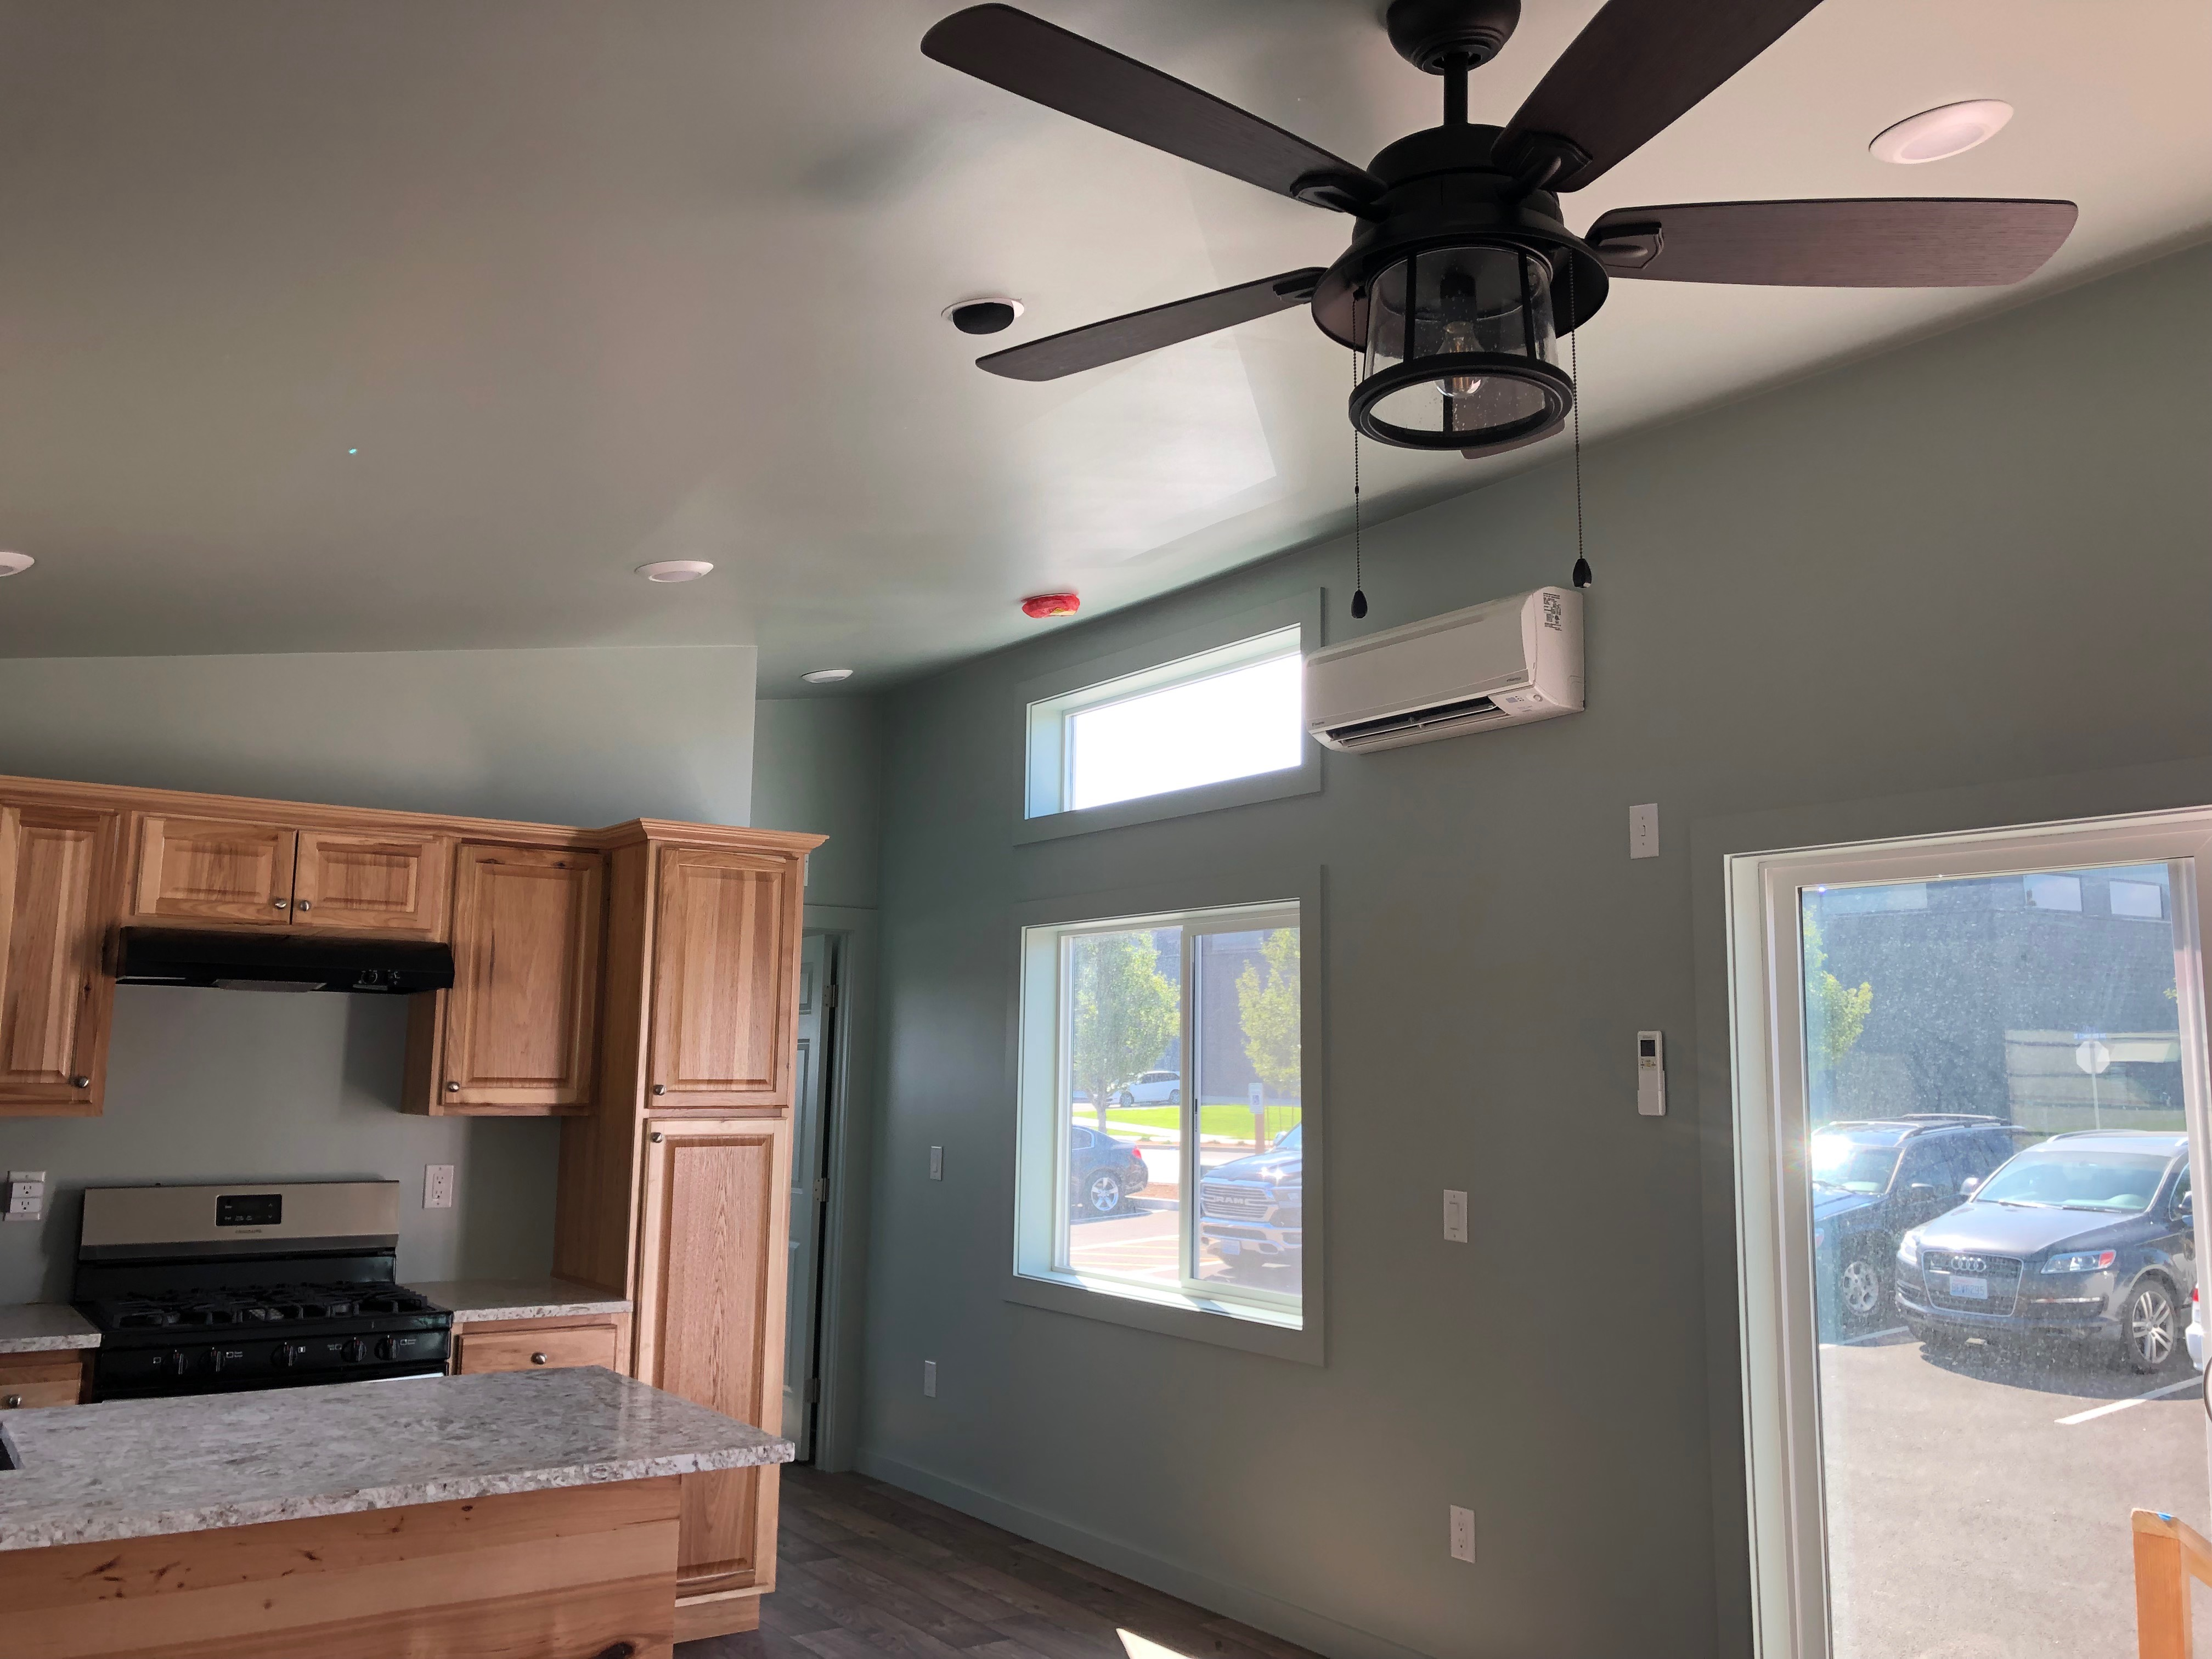 slanted ceiling in extra large tiny home